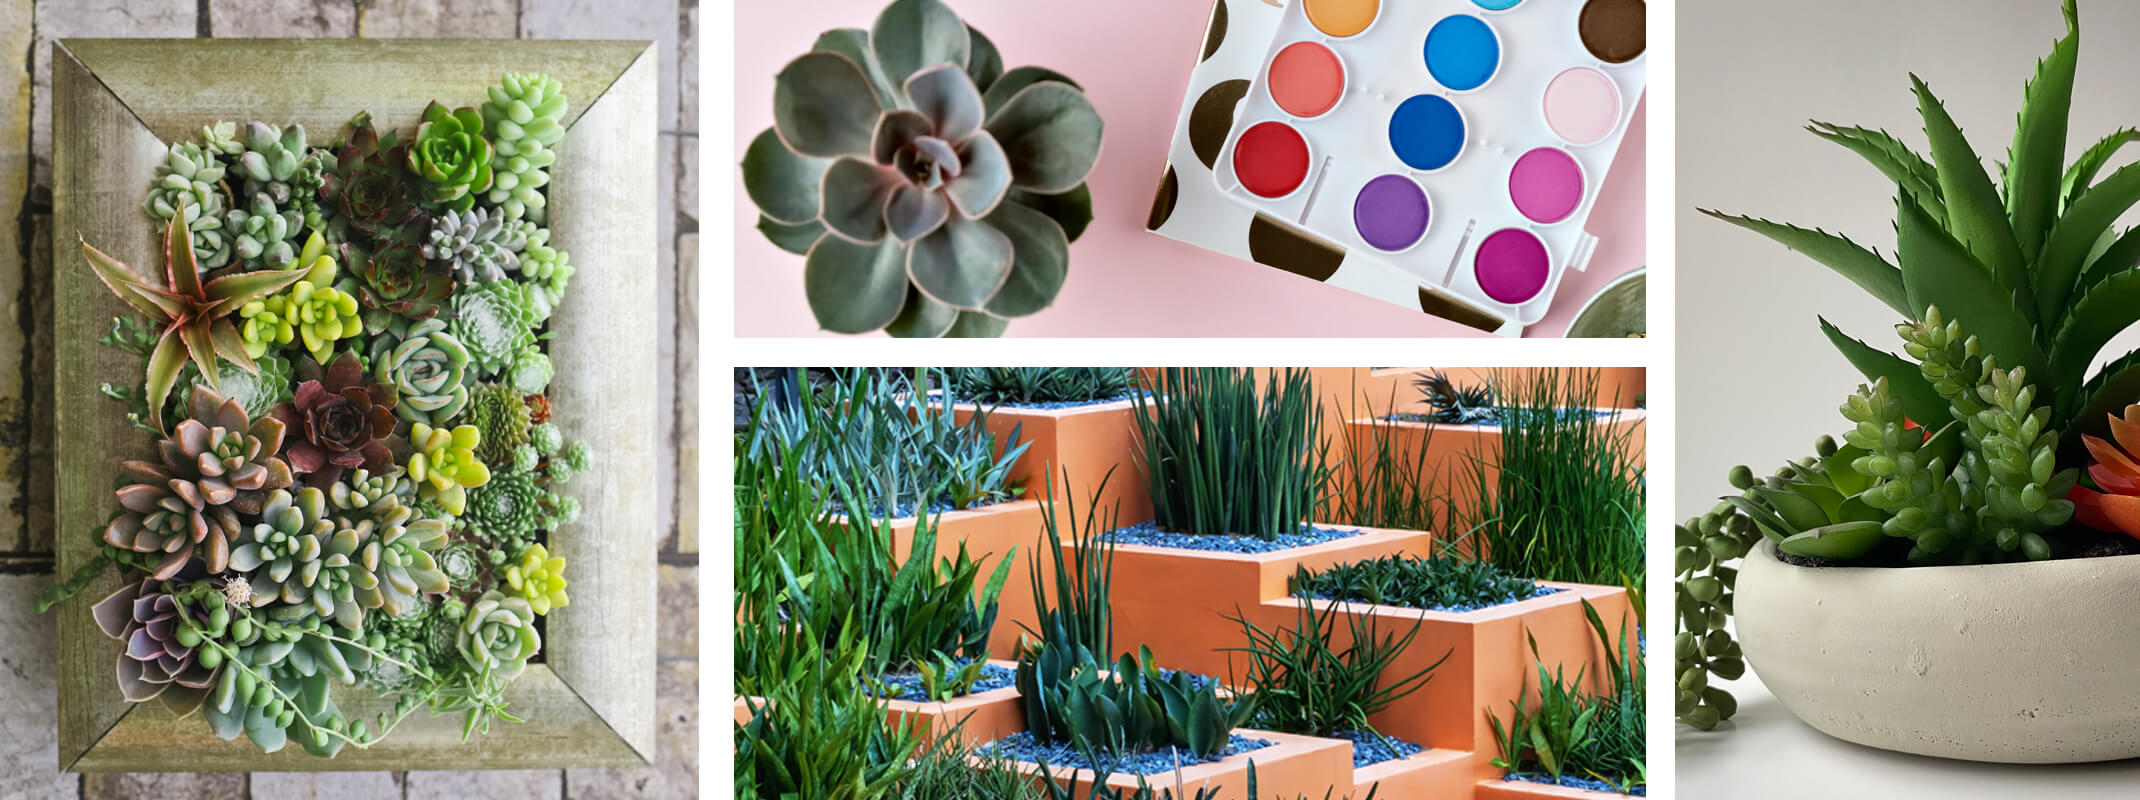 4 images succulents in frame second image of succulent next to paints third image of tiered  rock garden with plants and succulents planted and a forth image of a white bowl with succulents